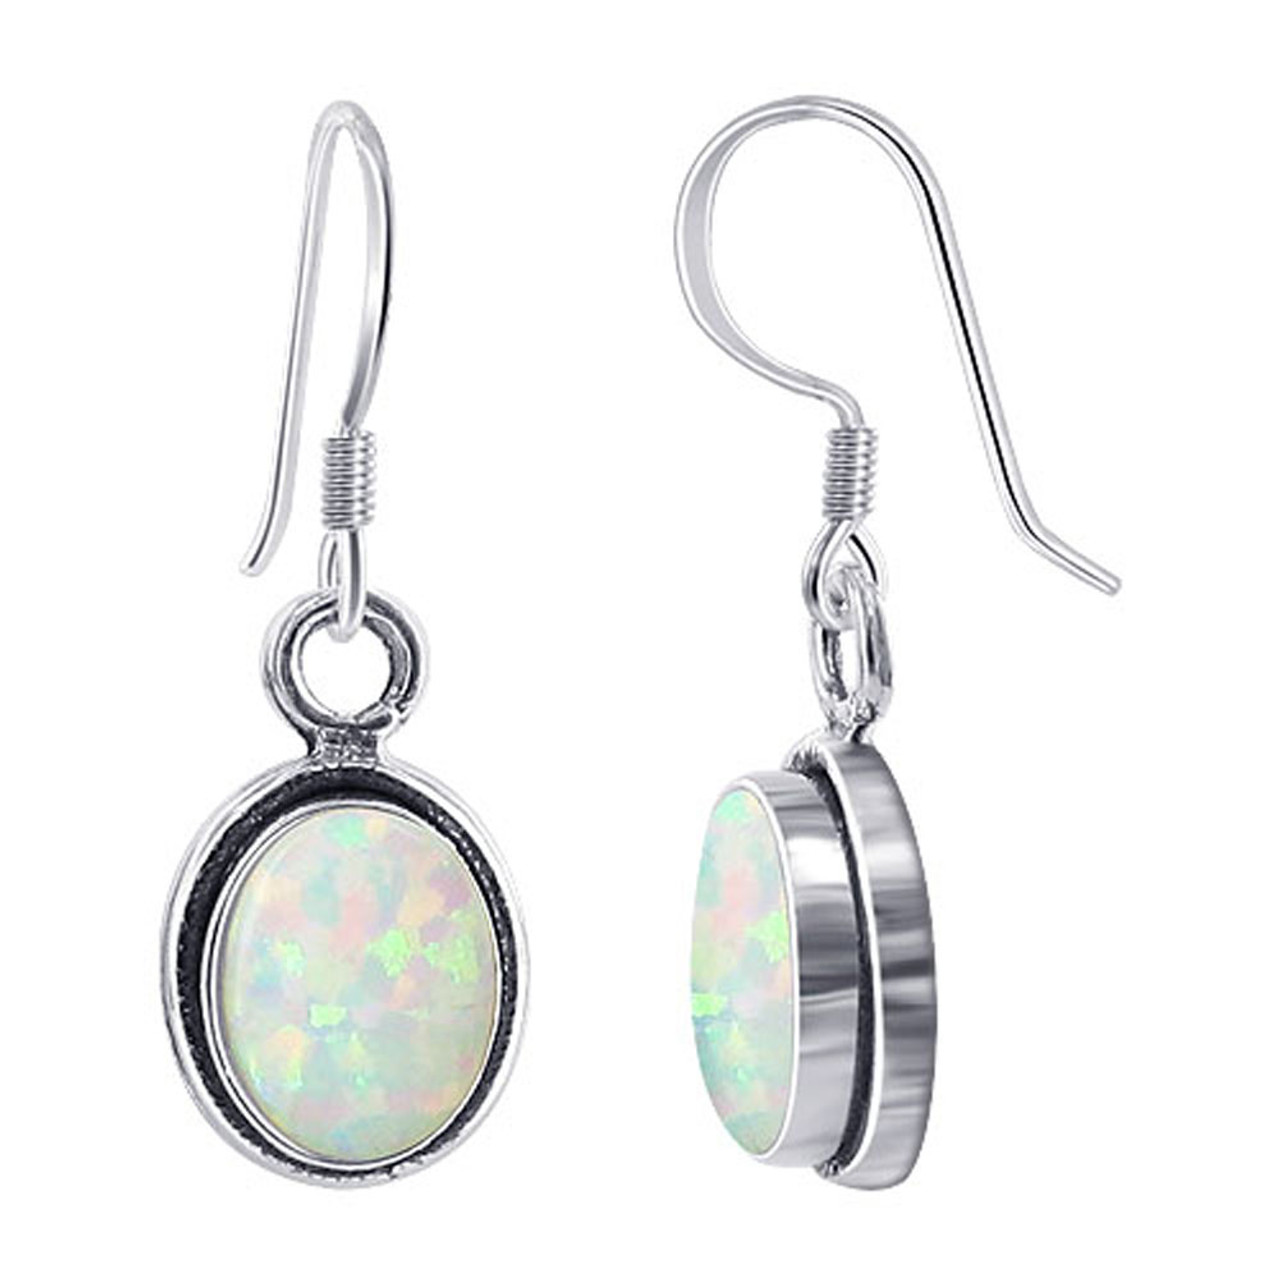 5841492caa5df Oval Created White Opal October Birthstone Gemstone 925 Sterling Silver  Drop Earrings